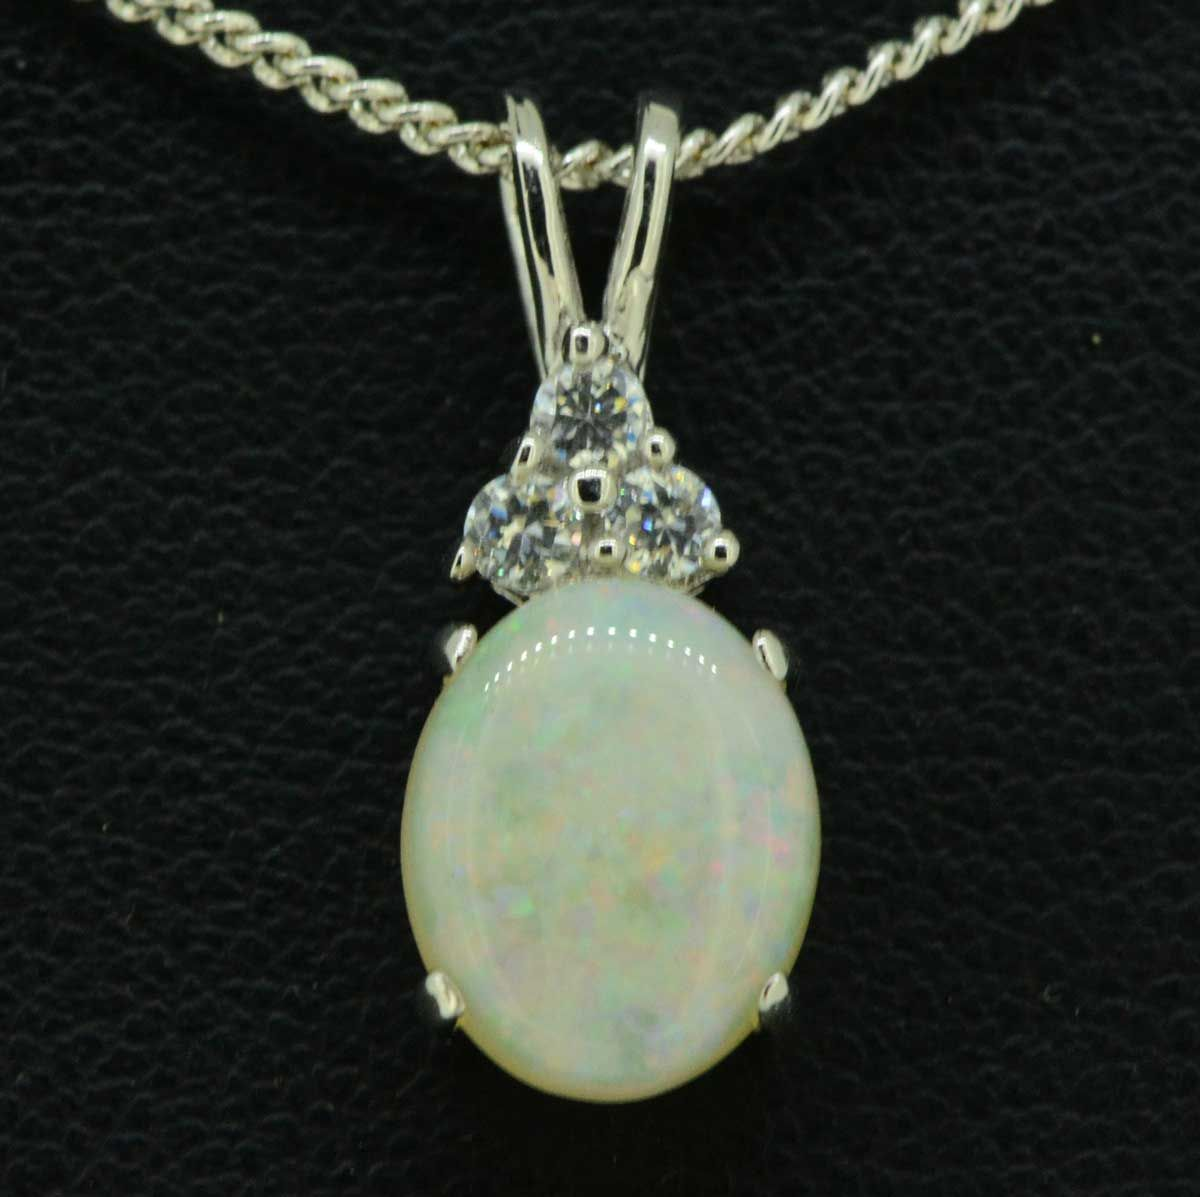 STERLING SILVER SOLID OPAL with 3 Crystals PENDANT (10mmx8mm)